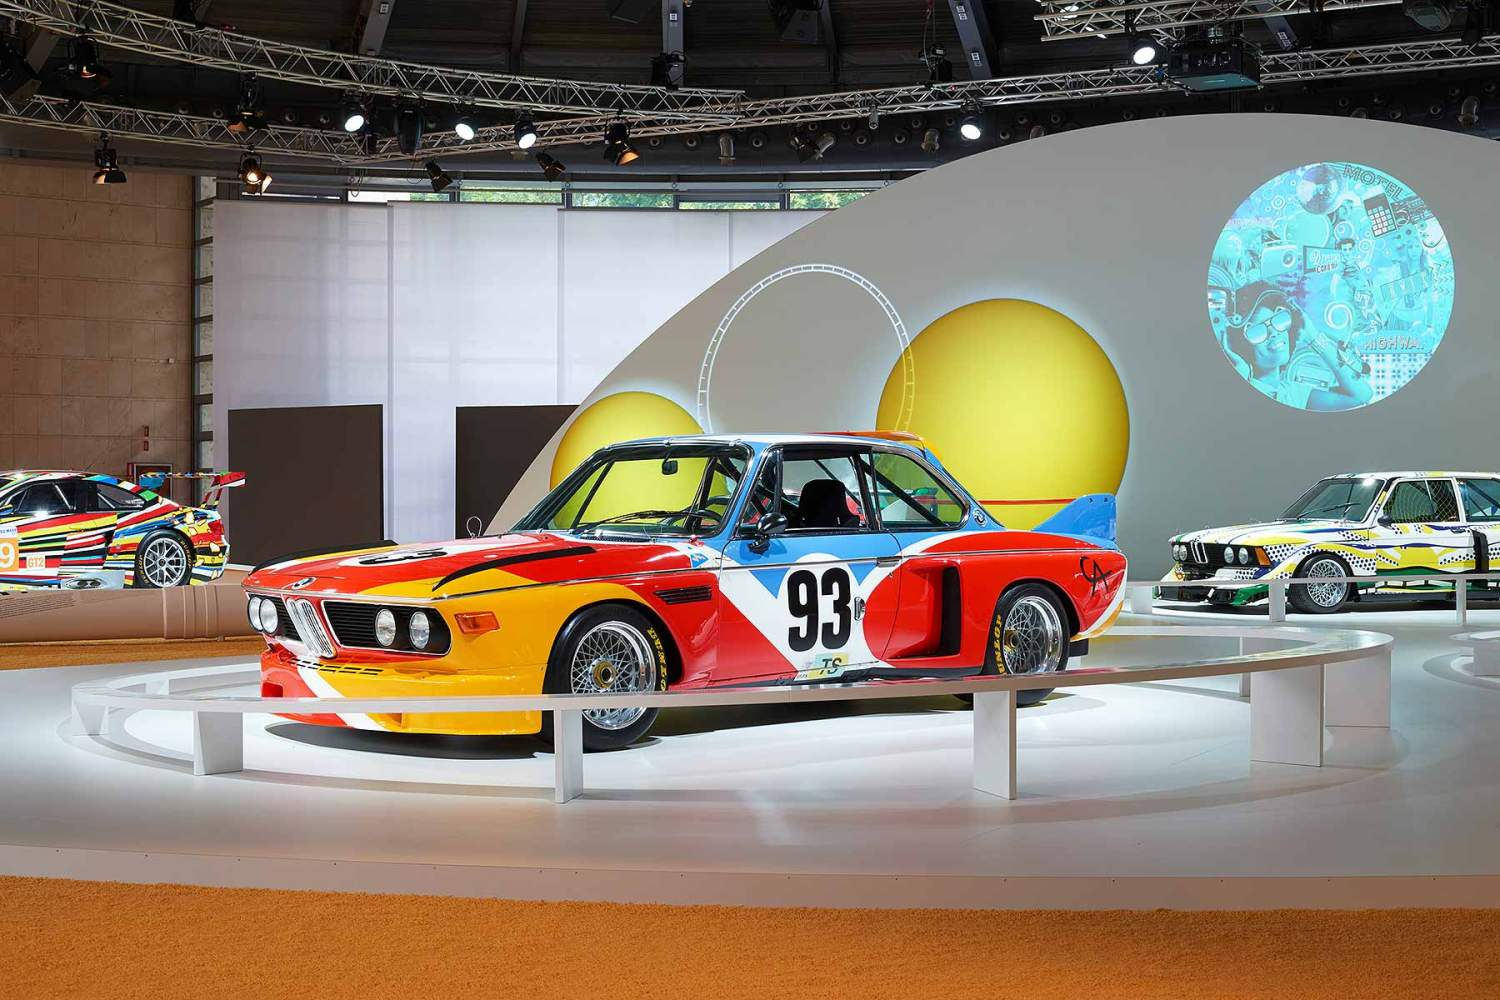 BMW 3.0 CSL art car by Alexander Calder